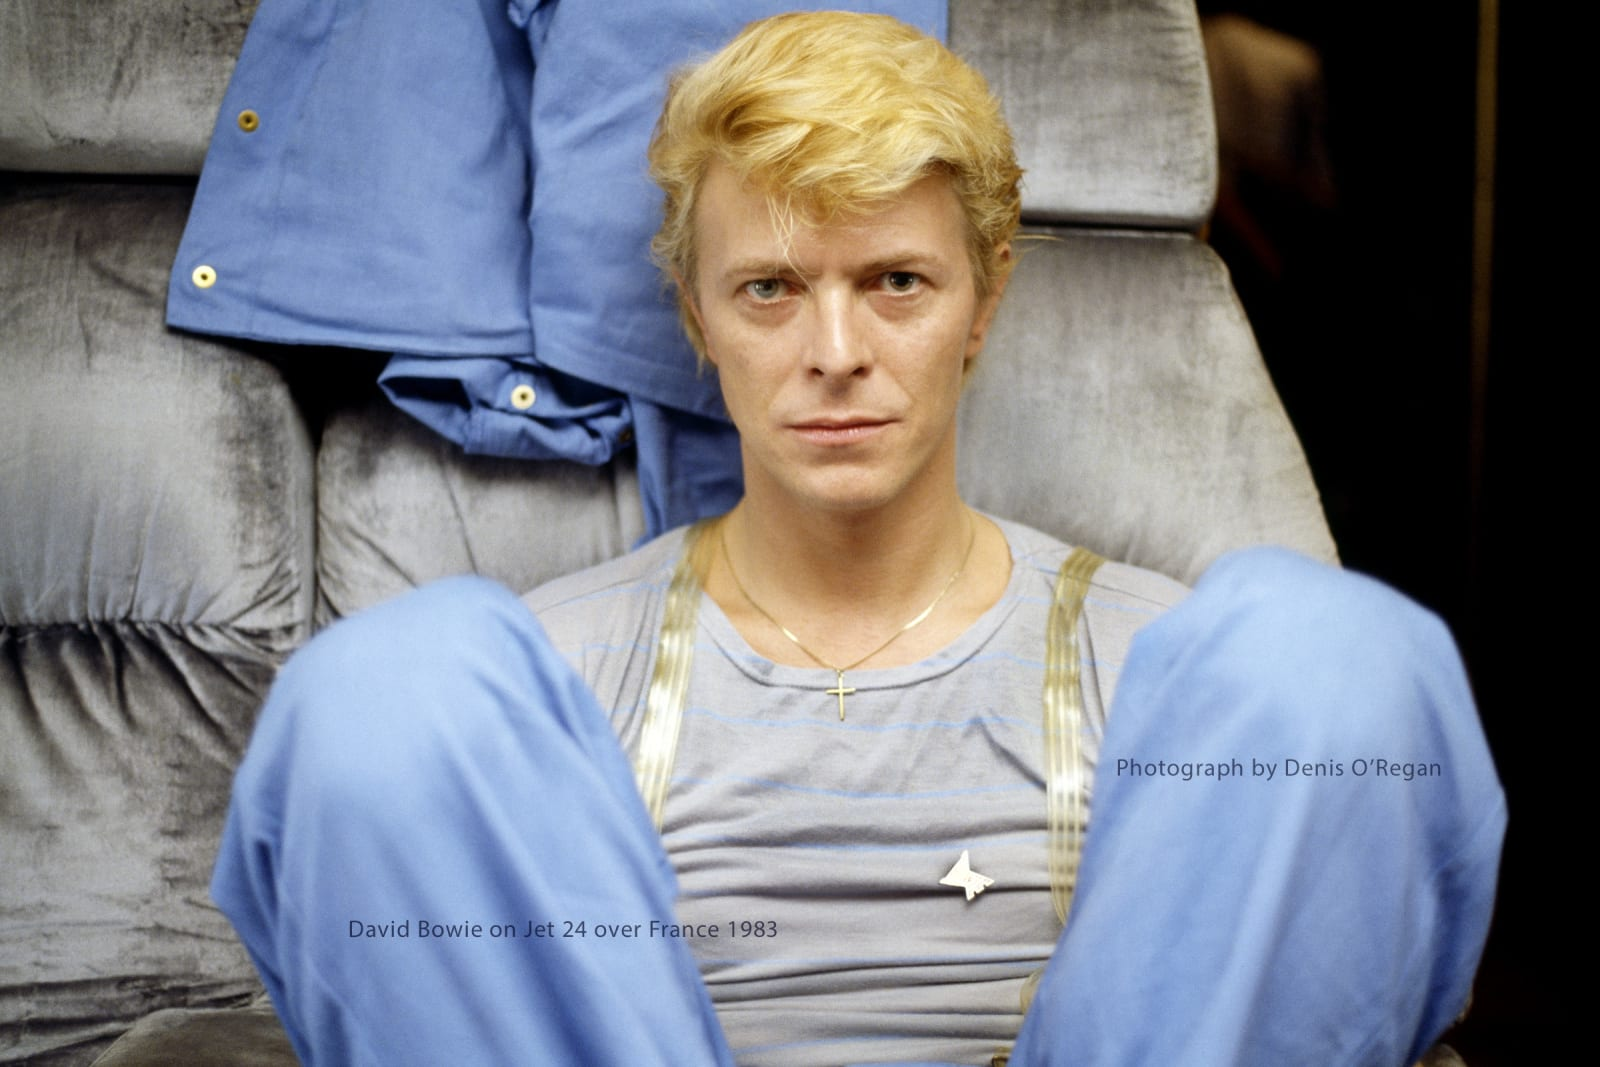 DAVID BOWIE, David Bowie Jet 24 over France, 1983